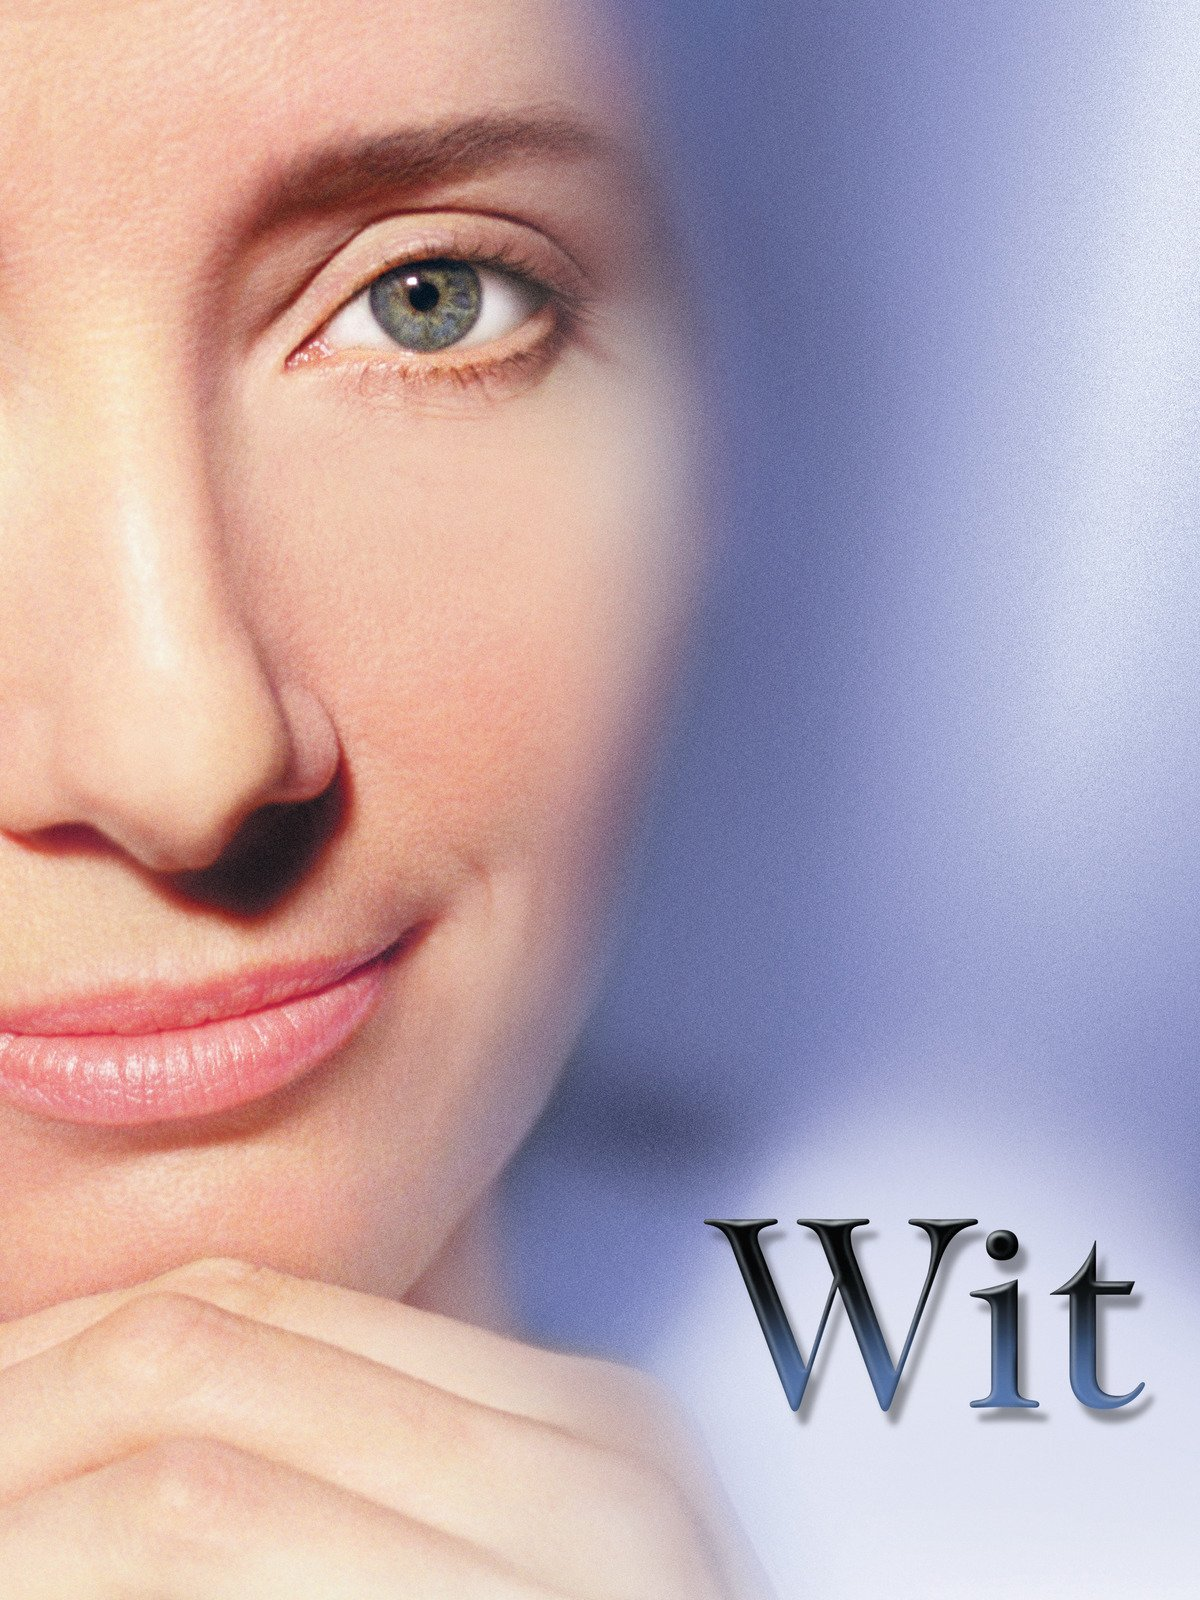 Check Out WitProducts On Amazon!